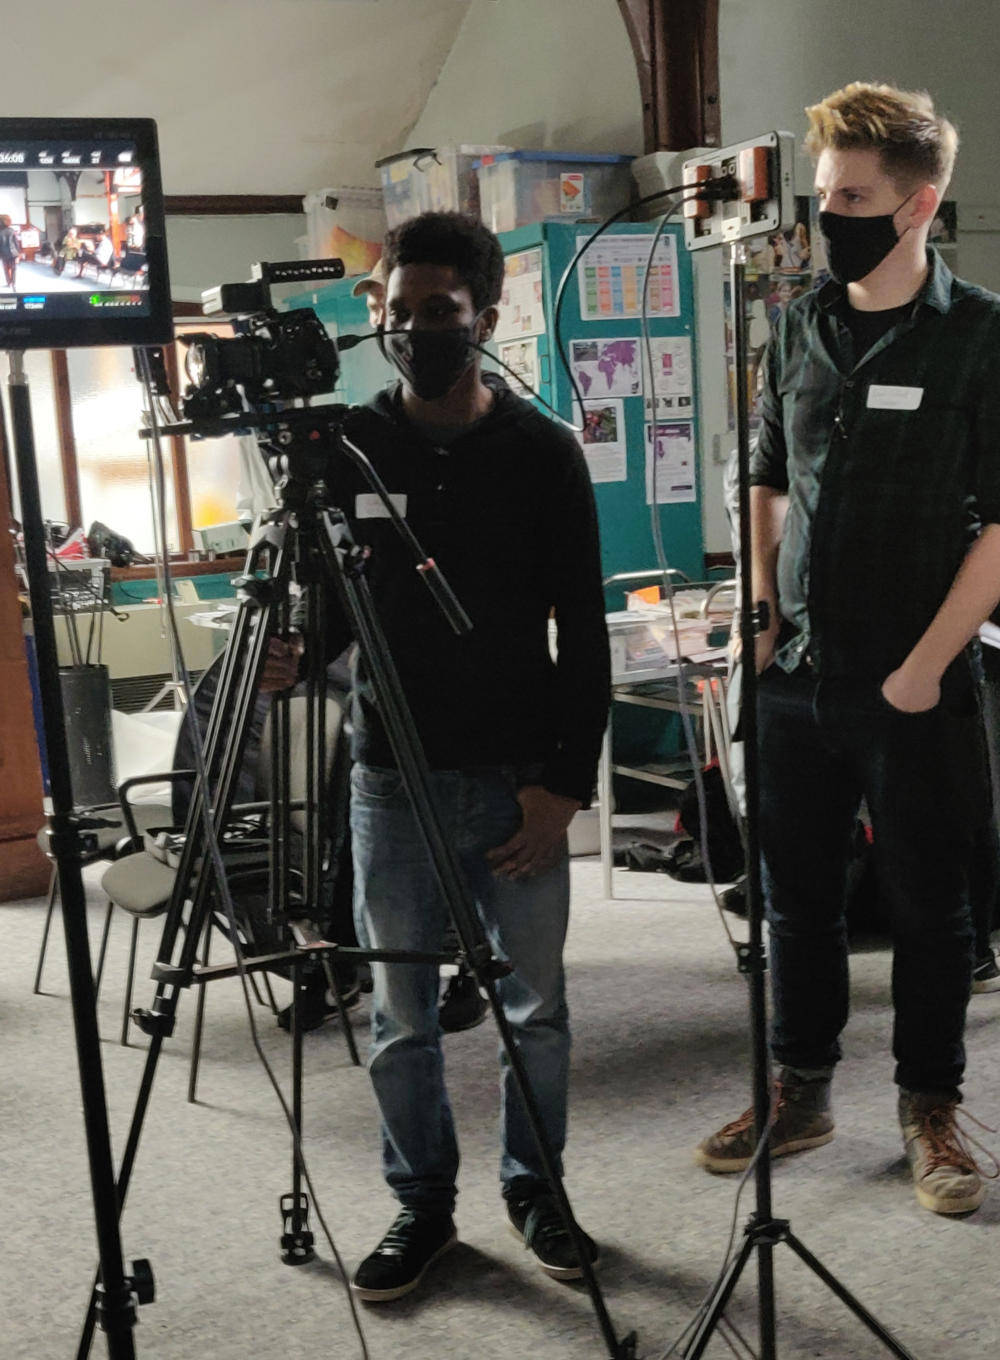 Behind the scenes image from Voyager sci-fi film with Director Liam Calvert and DoP Matthias Djan